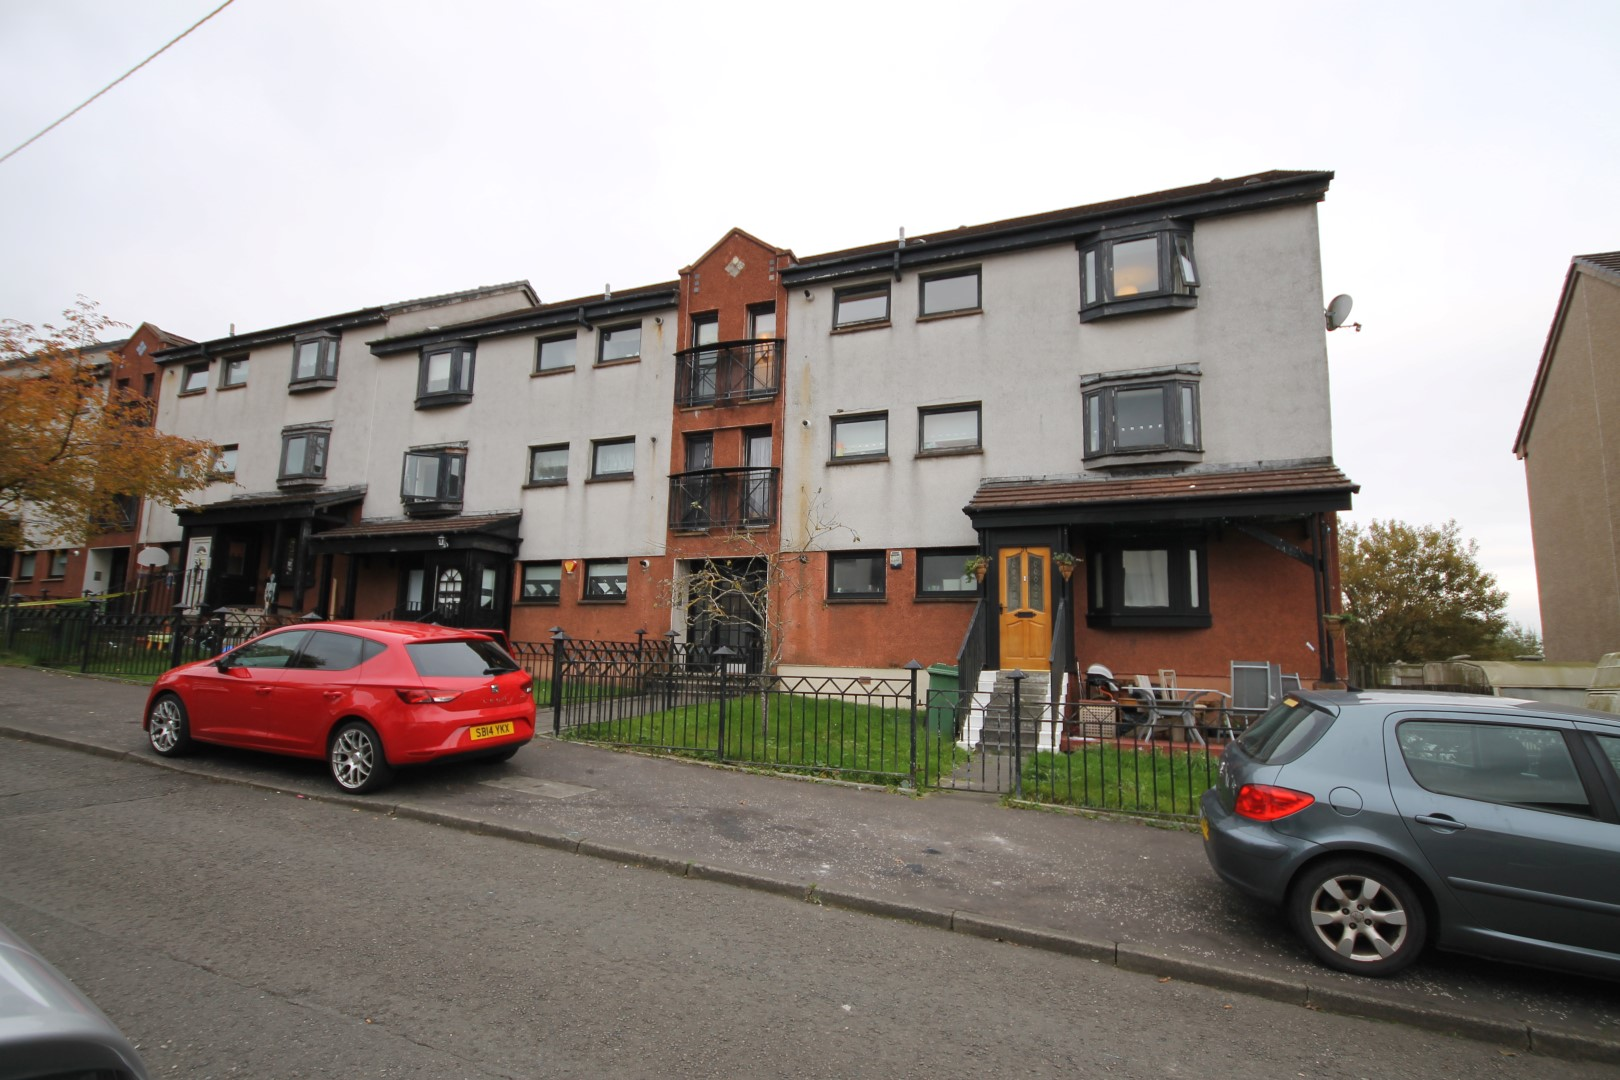 EASTERHOUSE – 3 Bedroom Flat